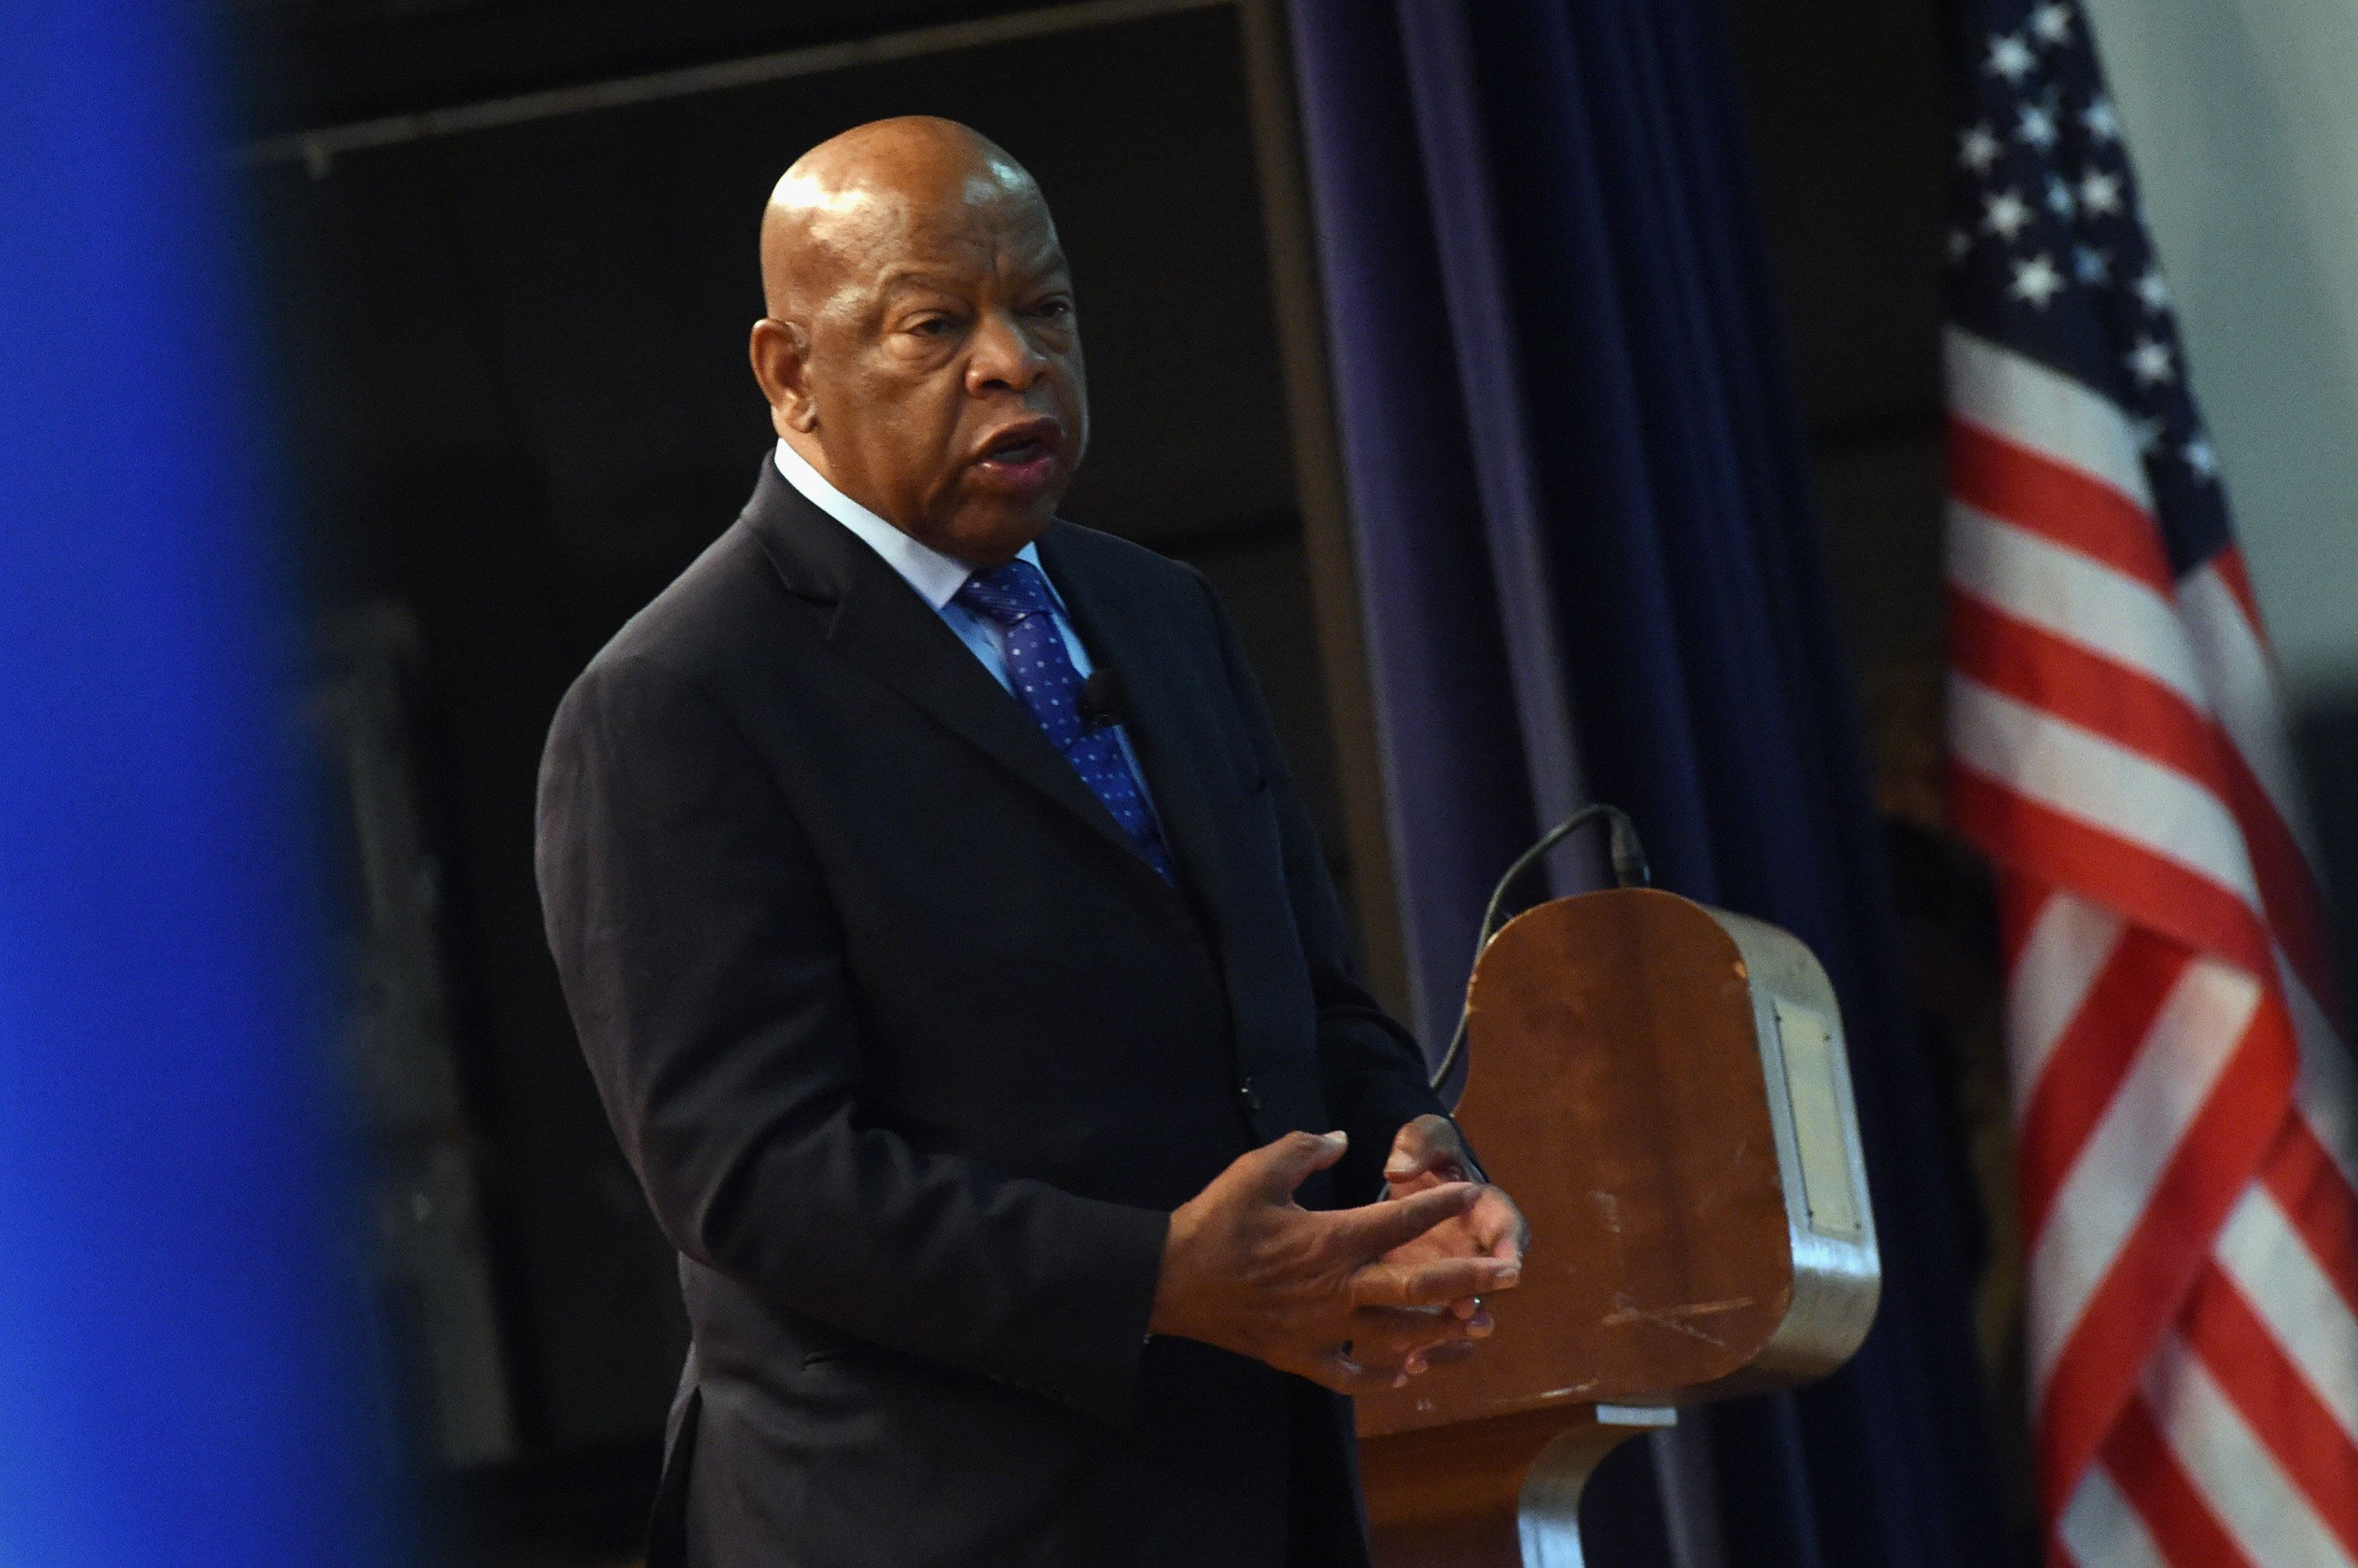 Rep. John Lewis, national treasure and American hero.